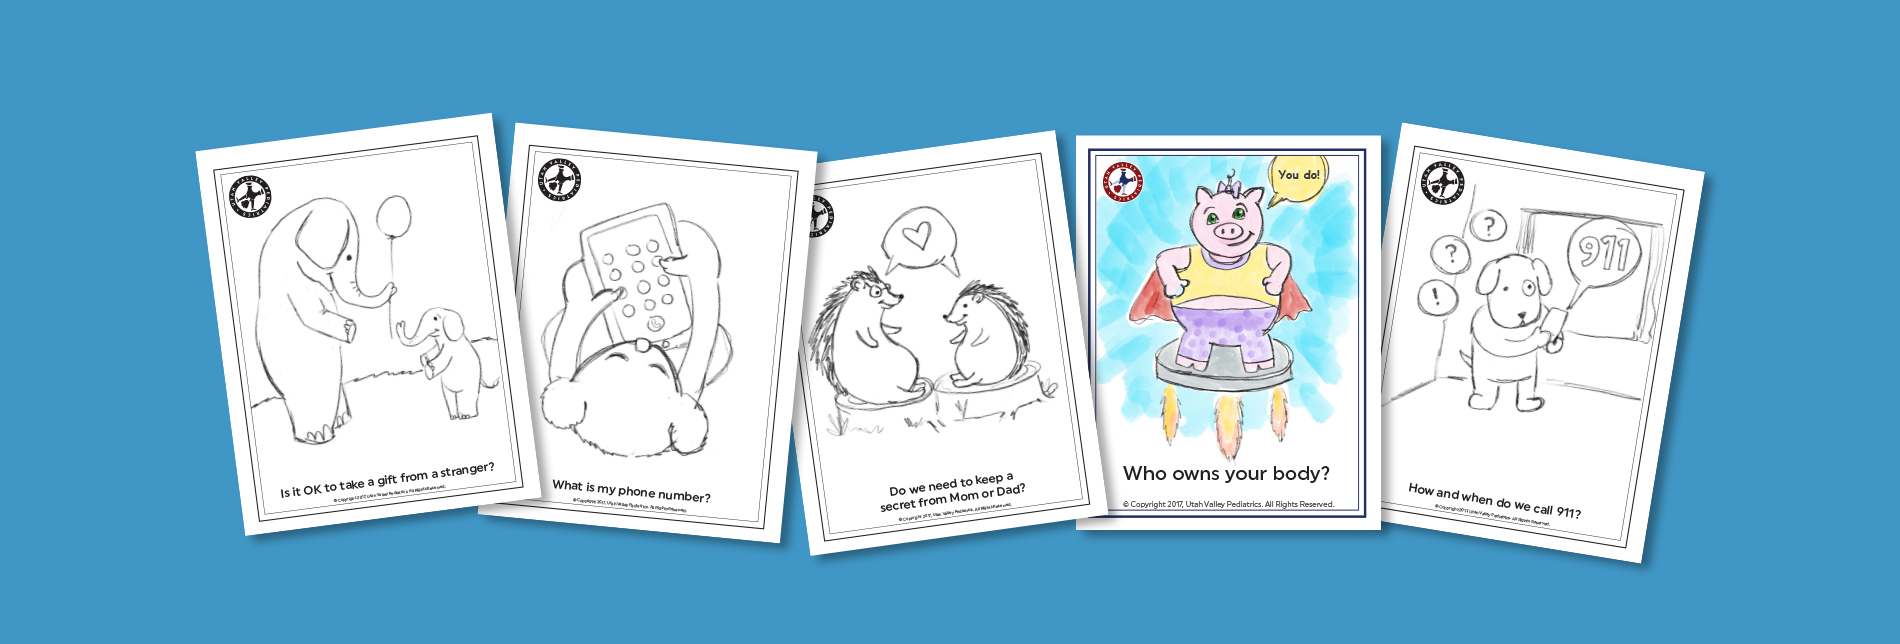 10 Safety Coloring Sheets for Kindergarteners